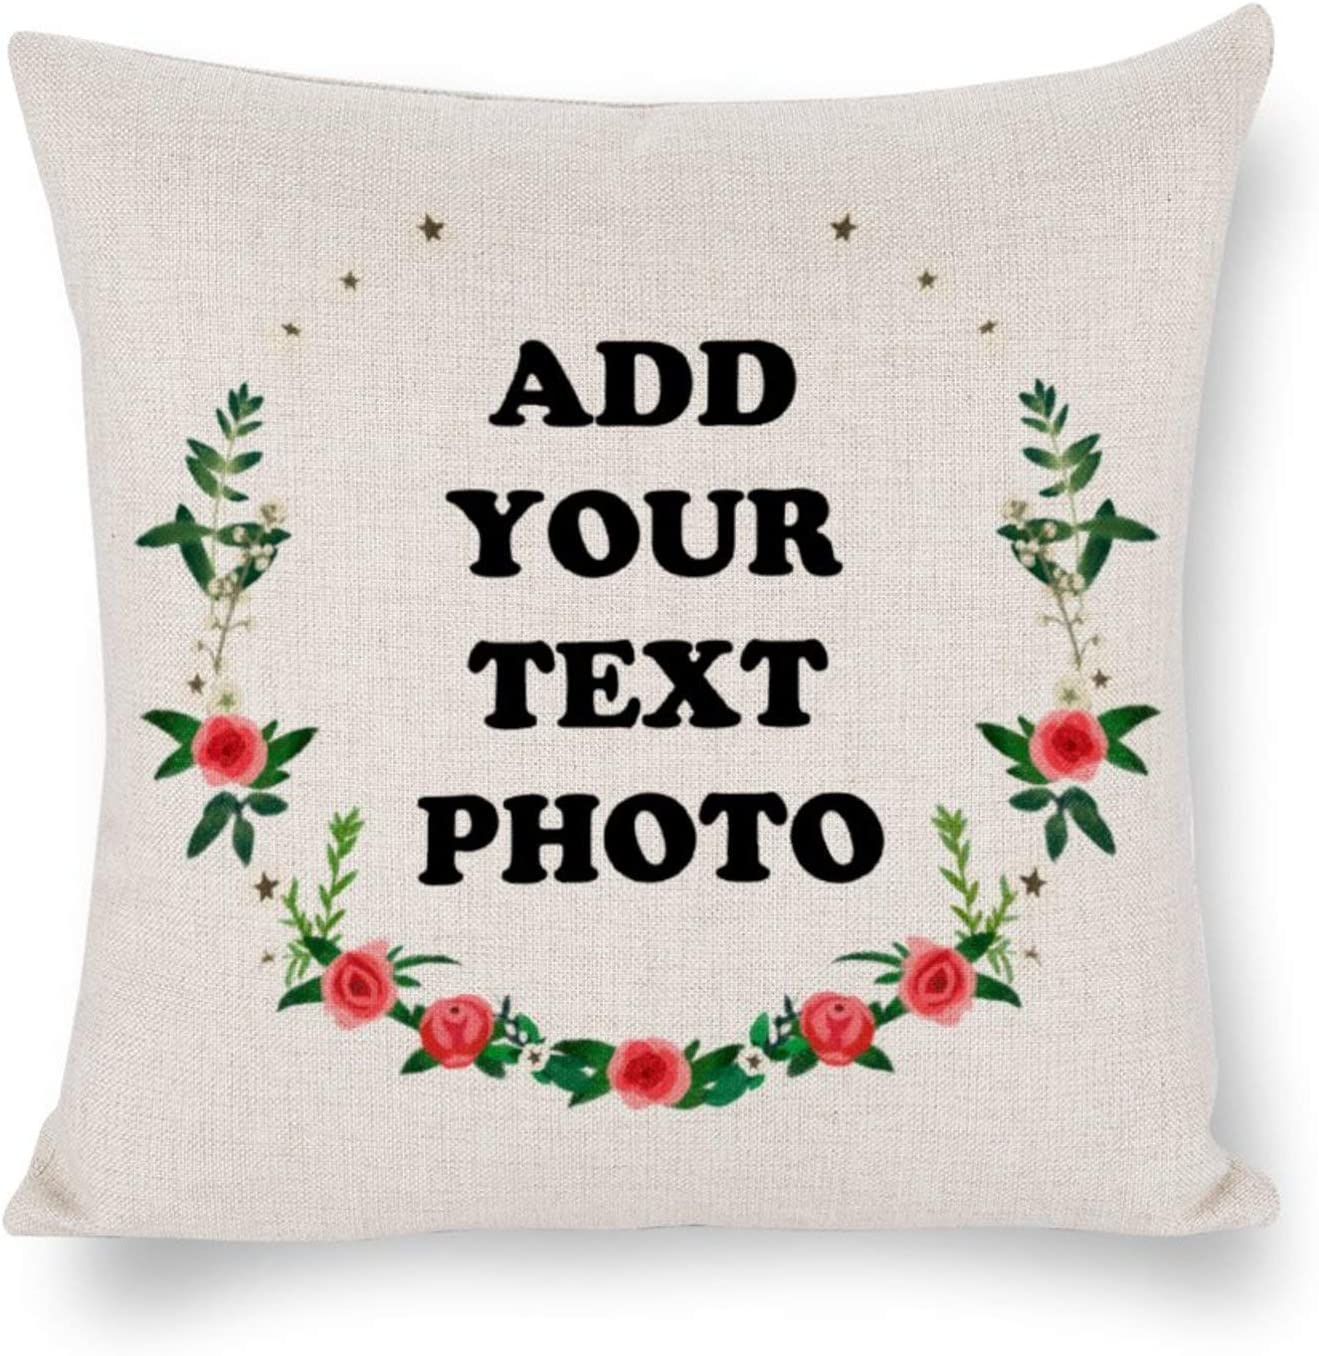 Personalized Pillow Case featuring ANTONIO in sign photos; Custom pillow cases; Teen bedroom decor; Cool pillow case; Personalised bedding